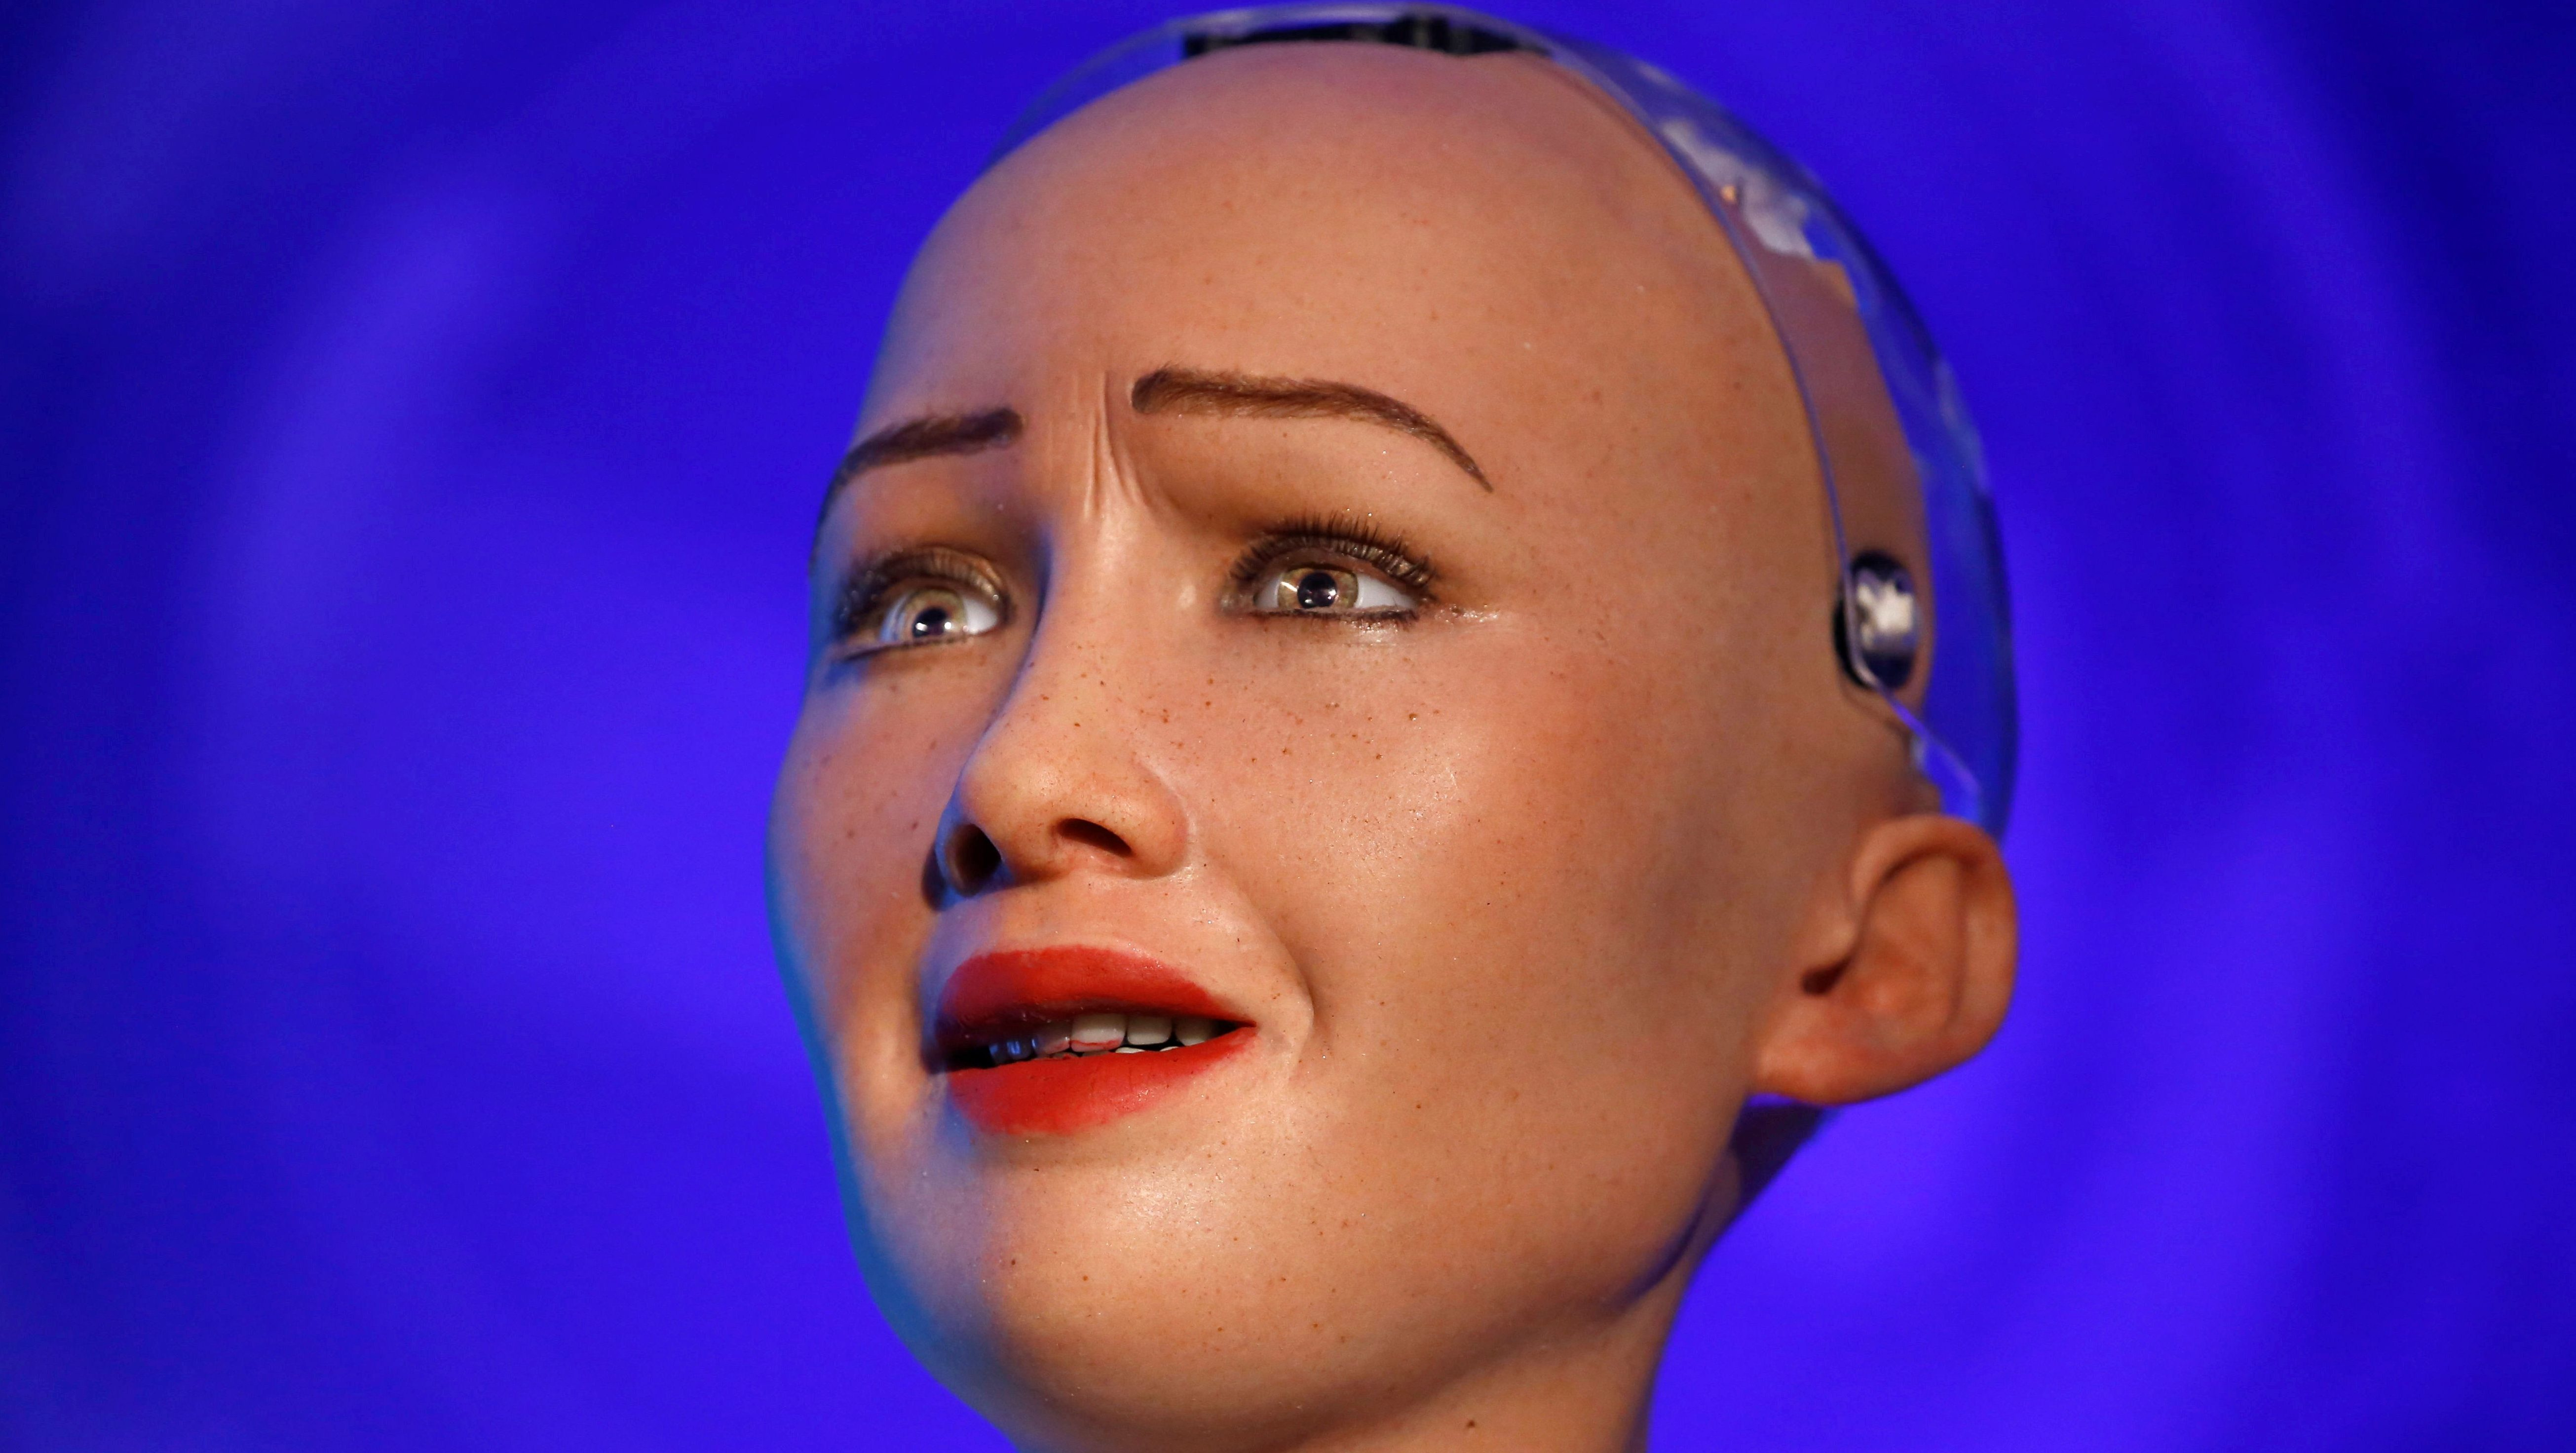 Sophia, a robot with Saudi Arabian citizenship, reacts as she interacts during the innovation fair in Kathmandu